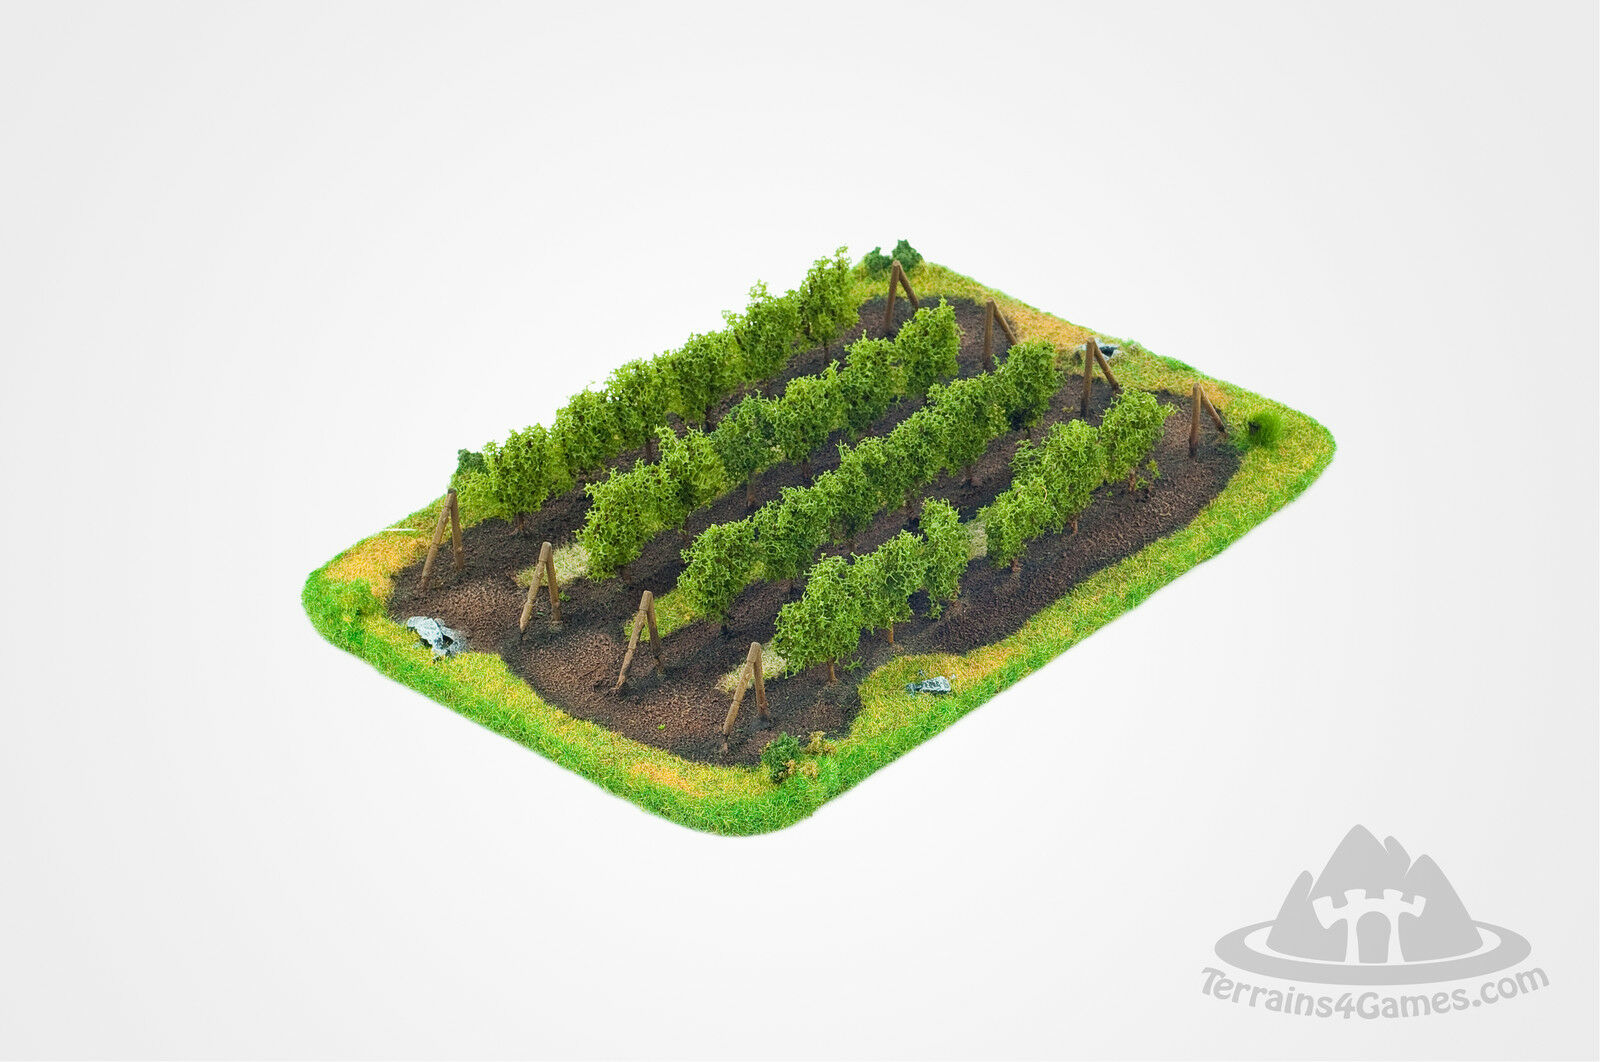 Terrains4Games - VINEYARD Wargame Scenery 15 mm painted